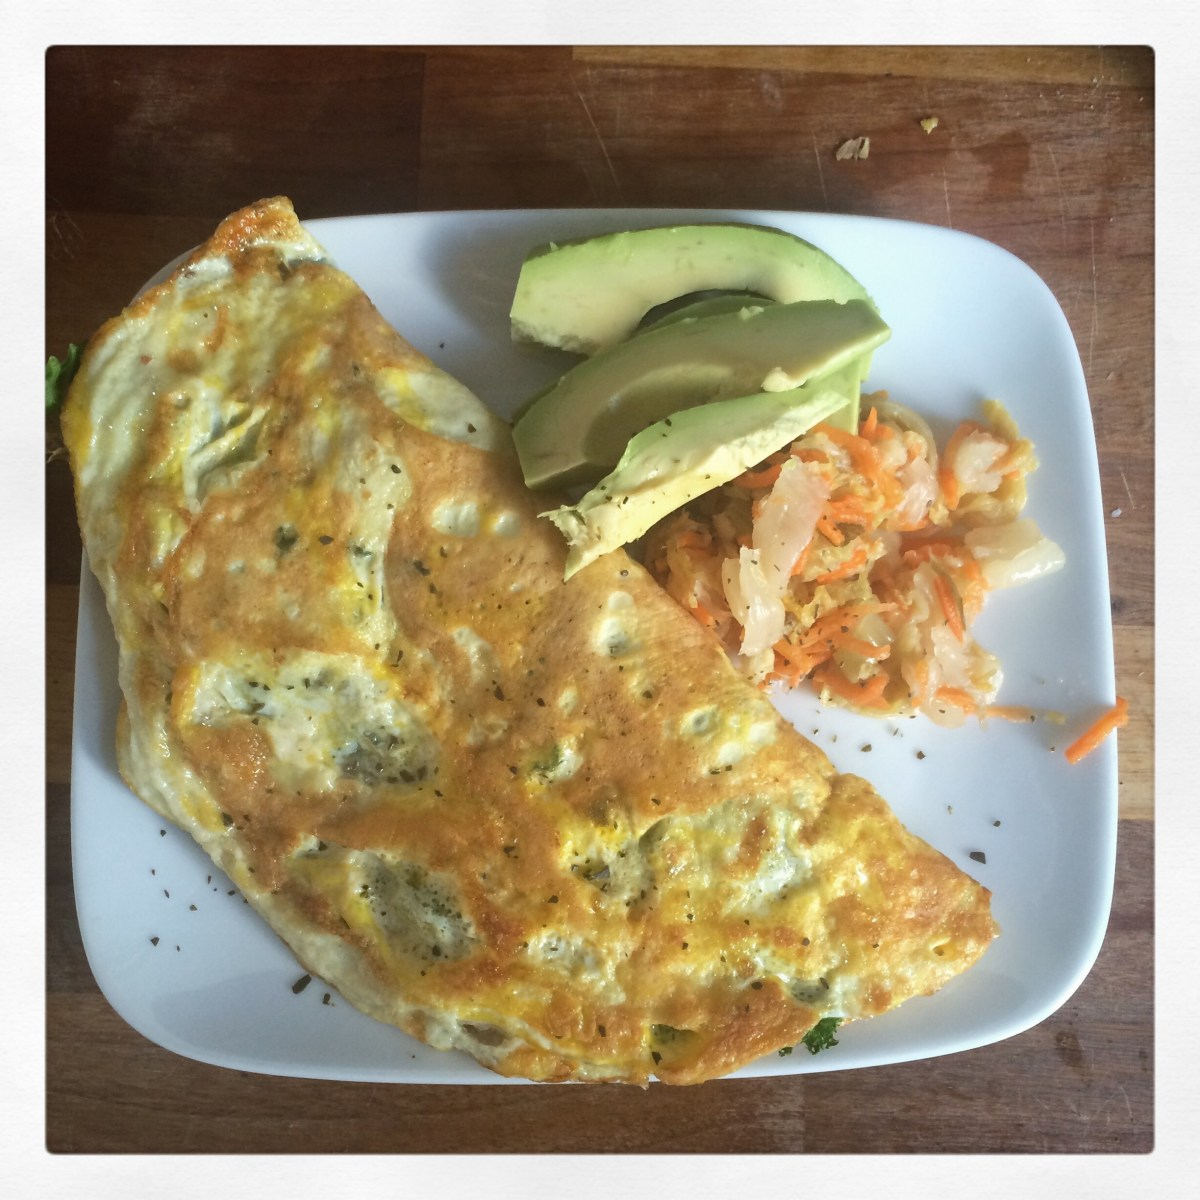 My usual big ass omelette with avocado and kimchi.